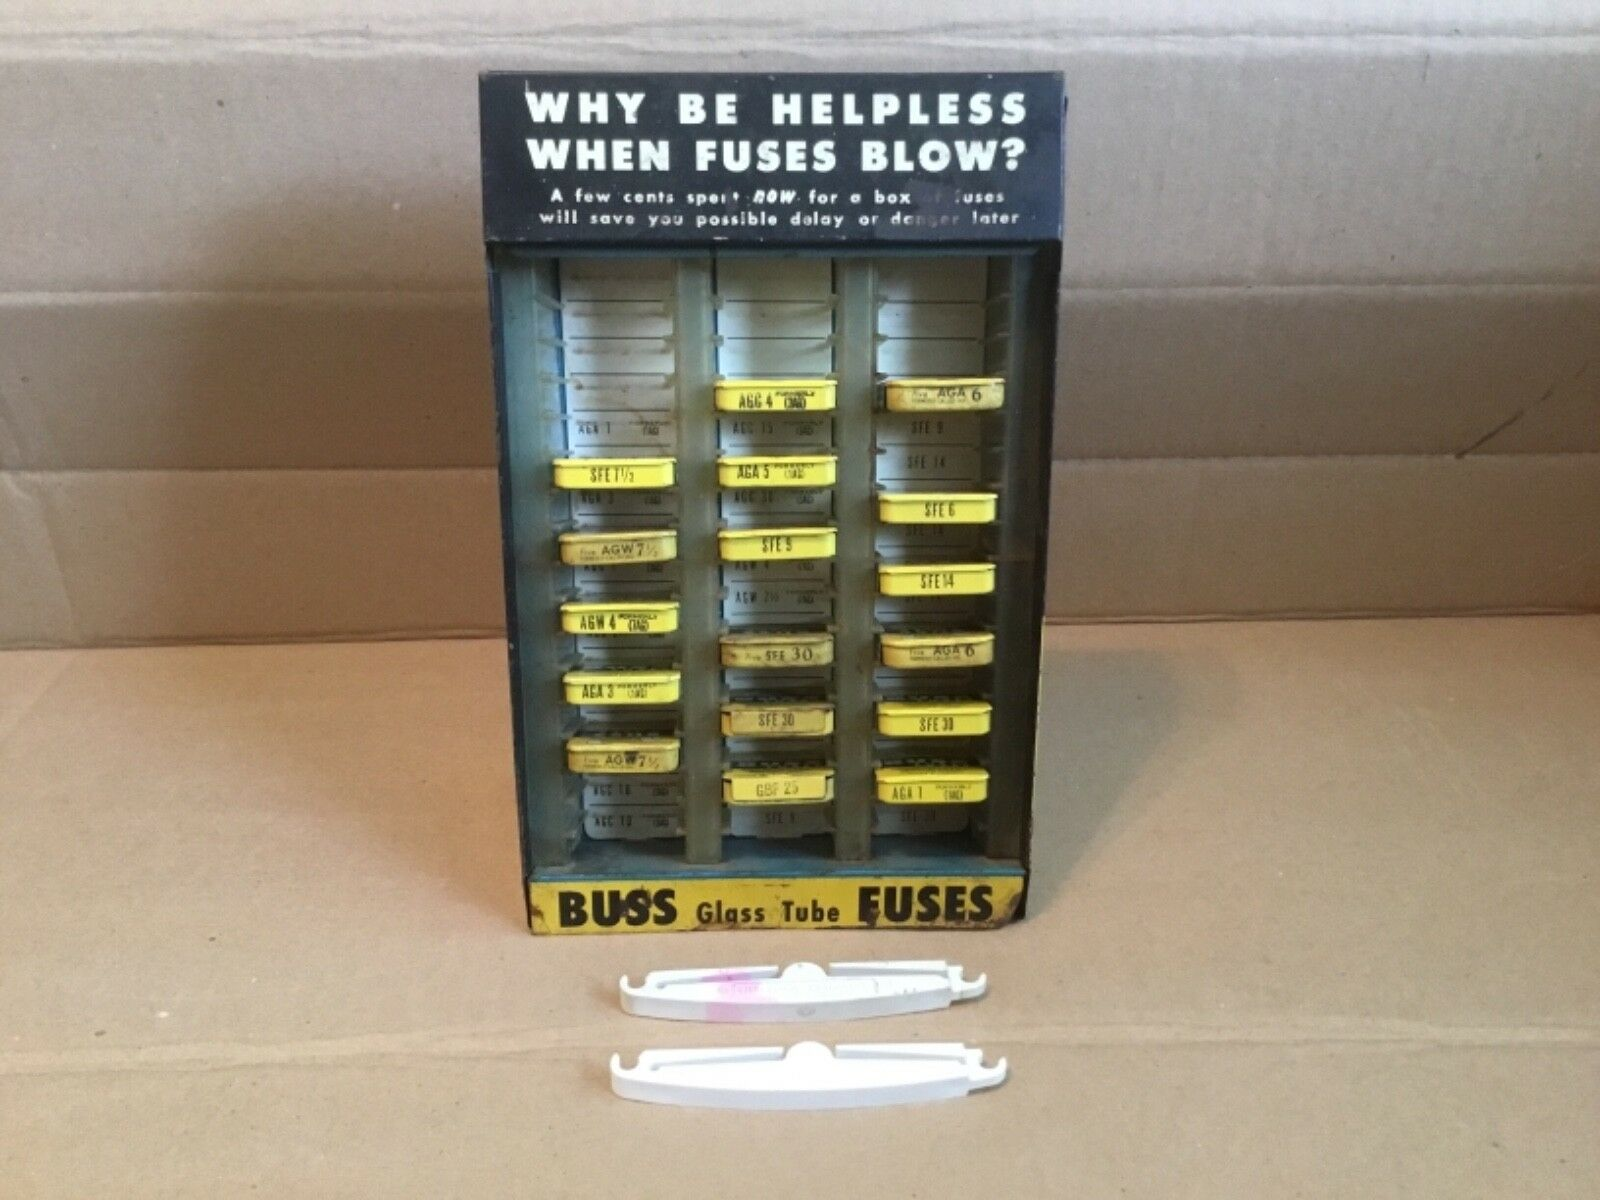 17 BOXES BUSS GLASS TUBE FUSES TIN BOX & METAL BUSS DISPLAY & GLASS FUSE PULLERS